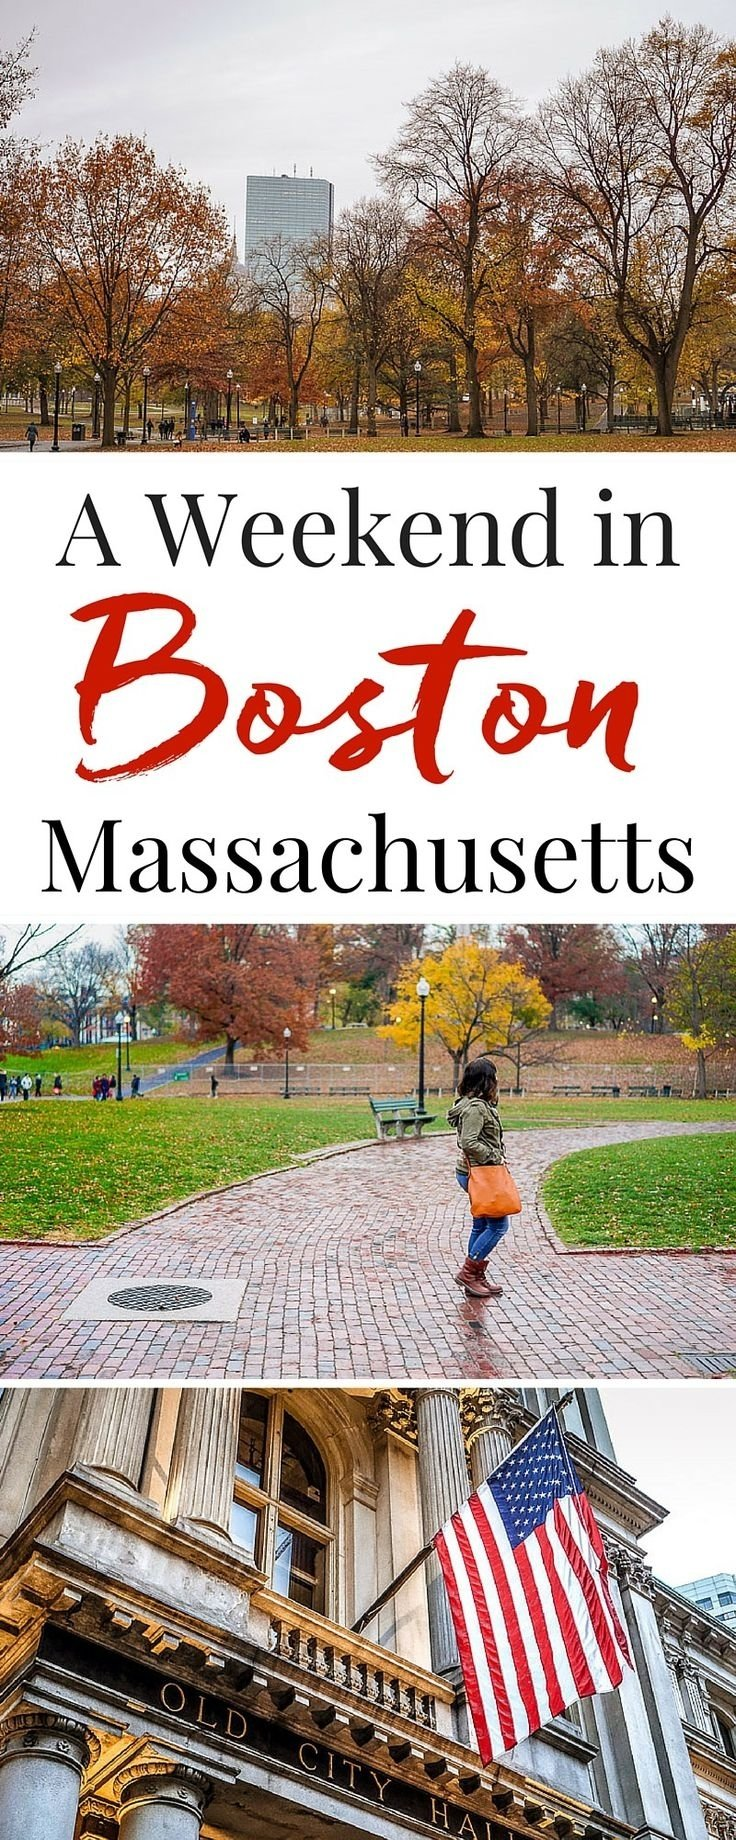 10 Cute Weekend Trip Ideas For Couples 204 best things to do in boston images on pinterest boston